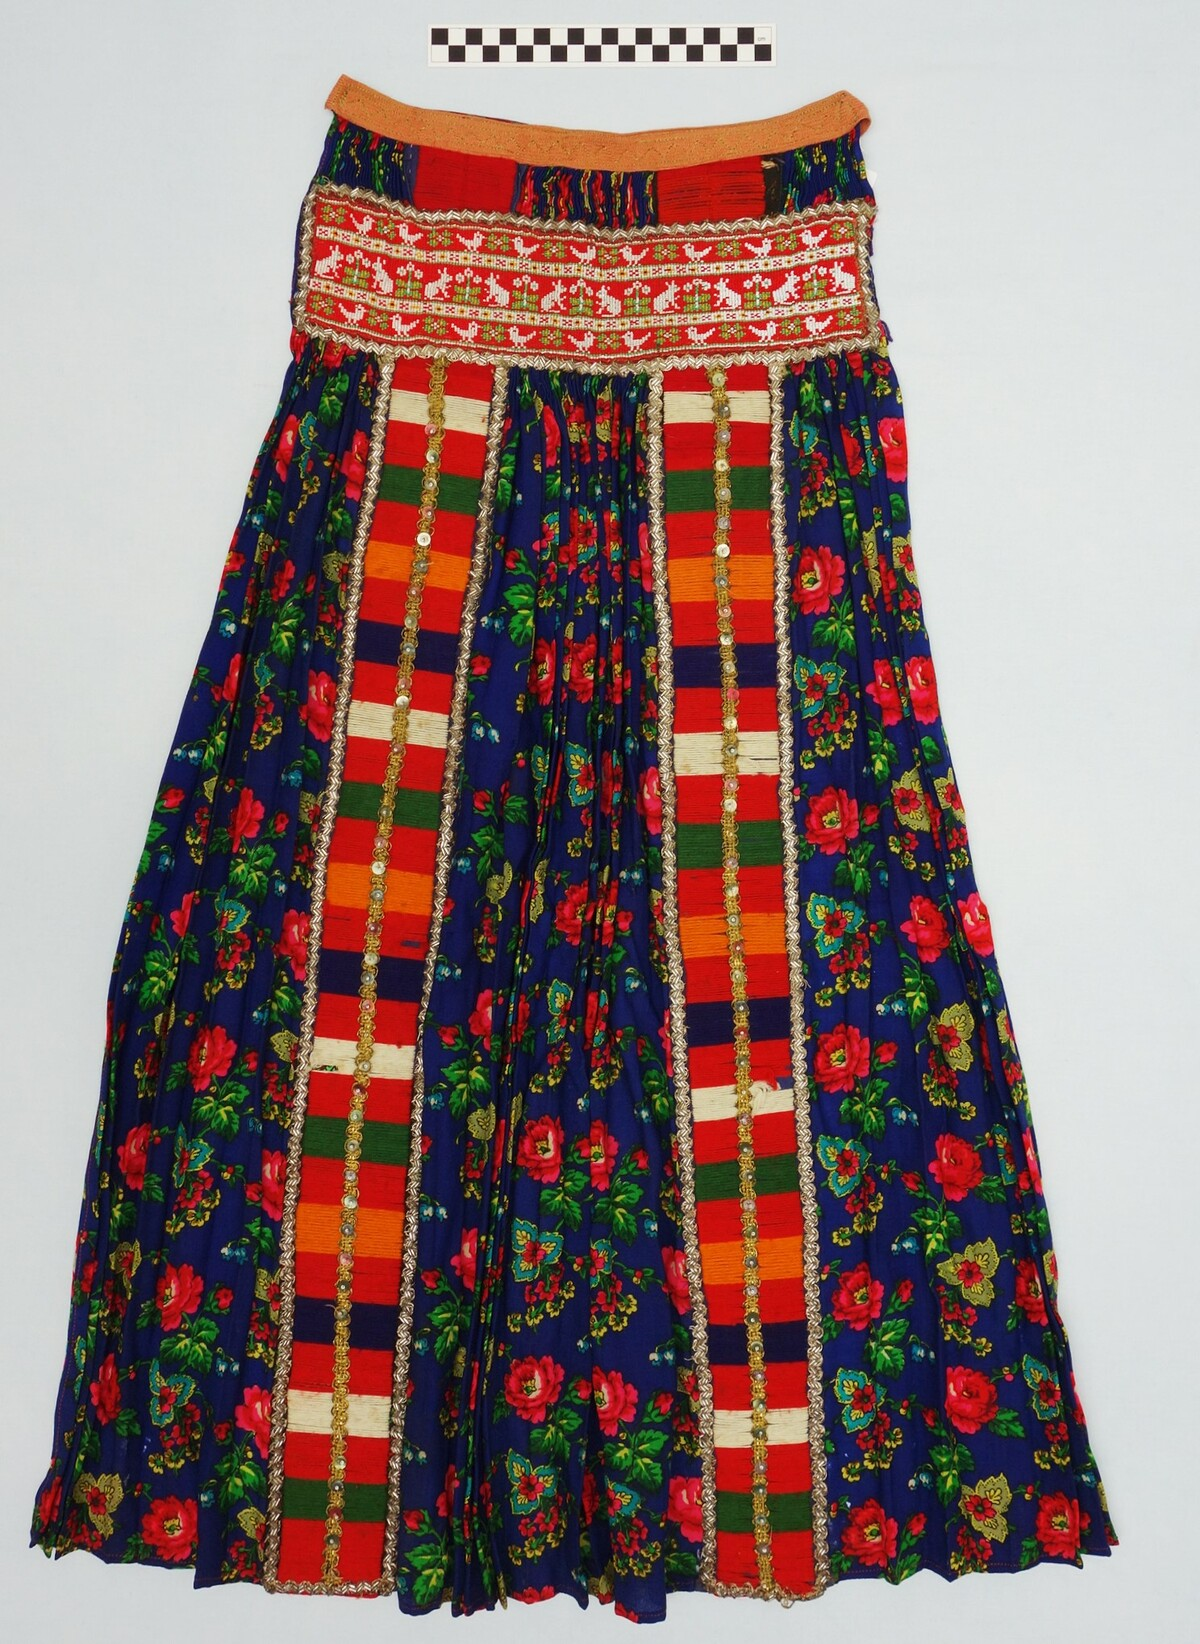 Detail of a woman's apron from Hungary, 1930's, decorated with beadwork.